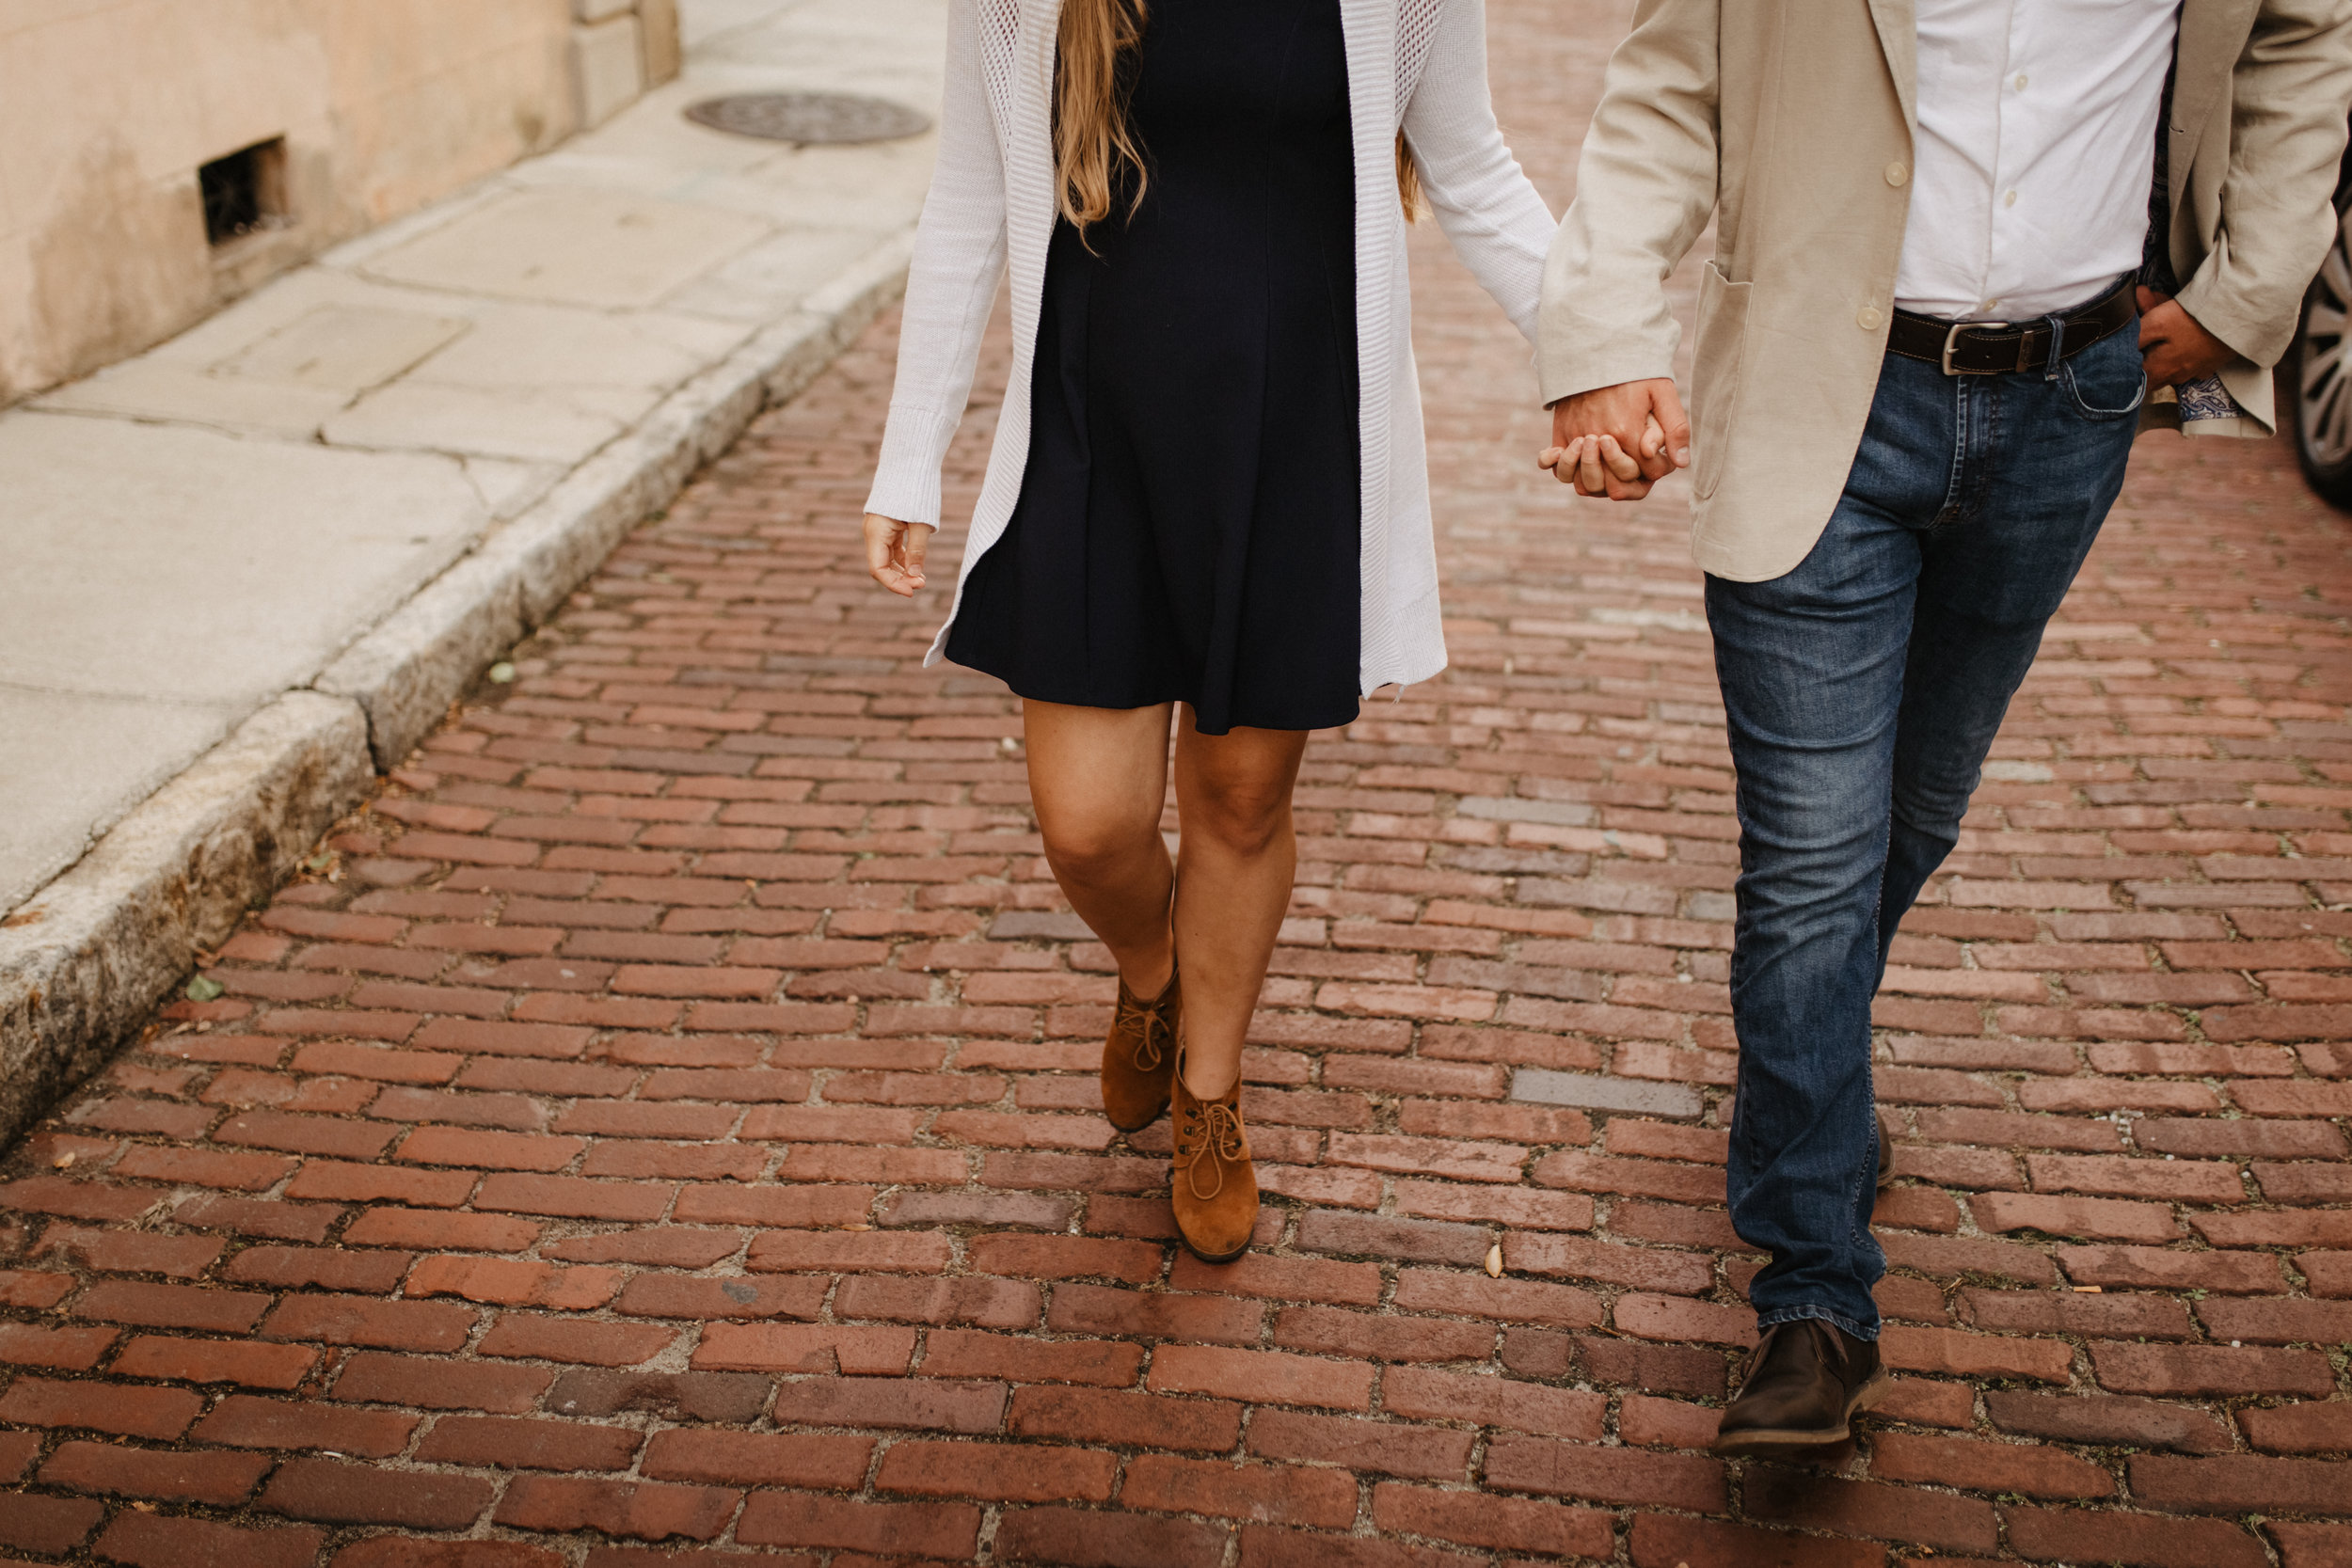 ShadowShinePictures-RachelDavid-Eudy-Engagement-Photography-385.jpg